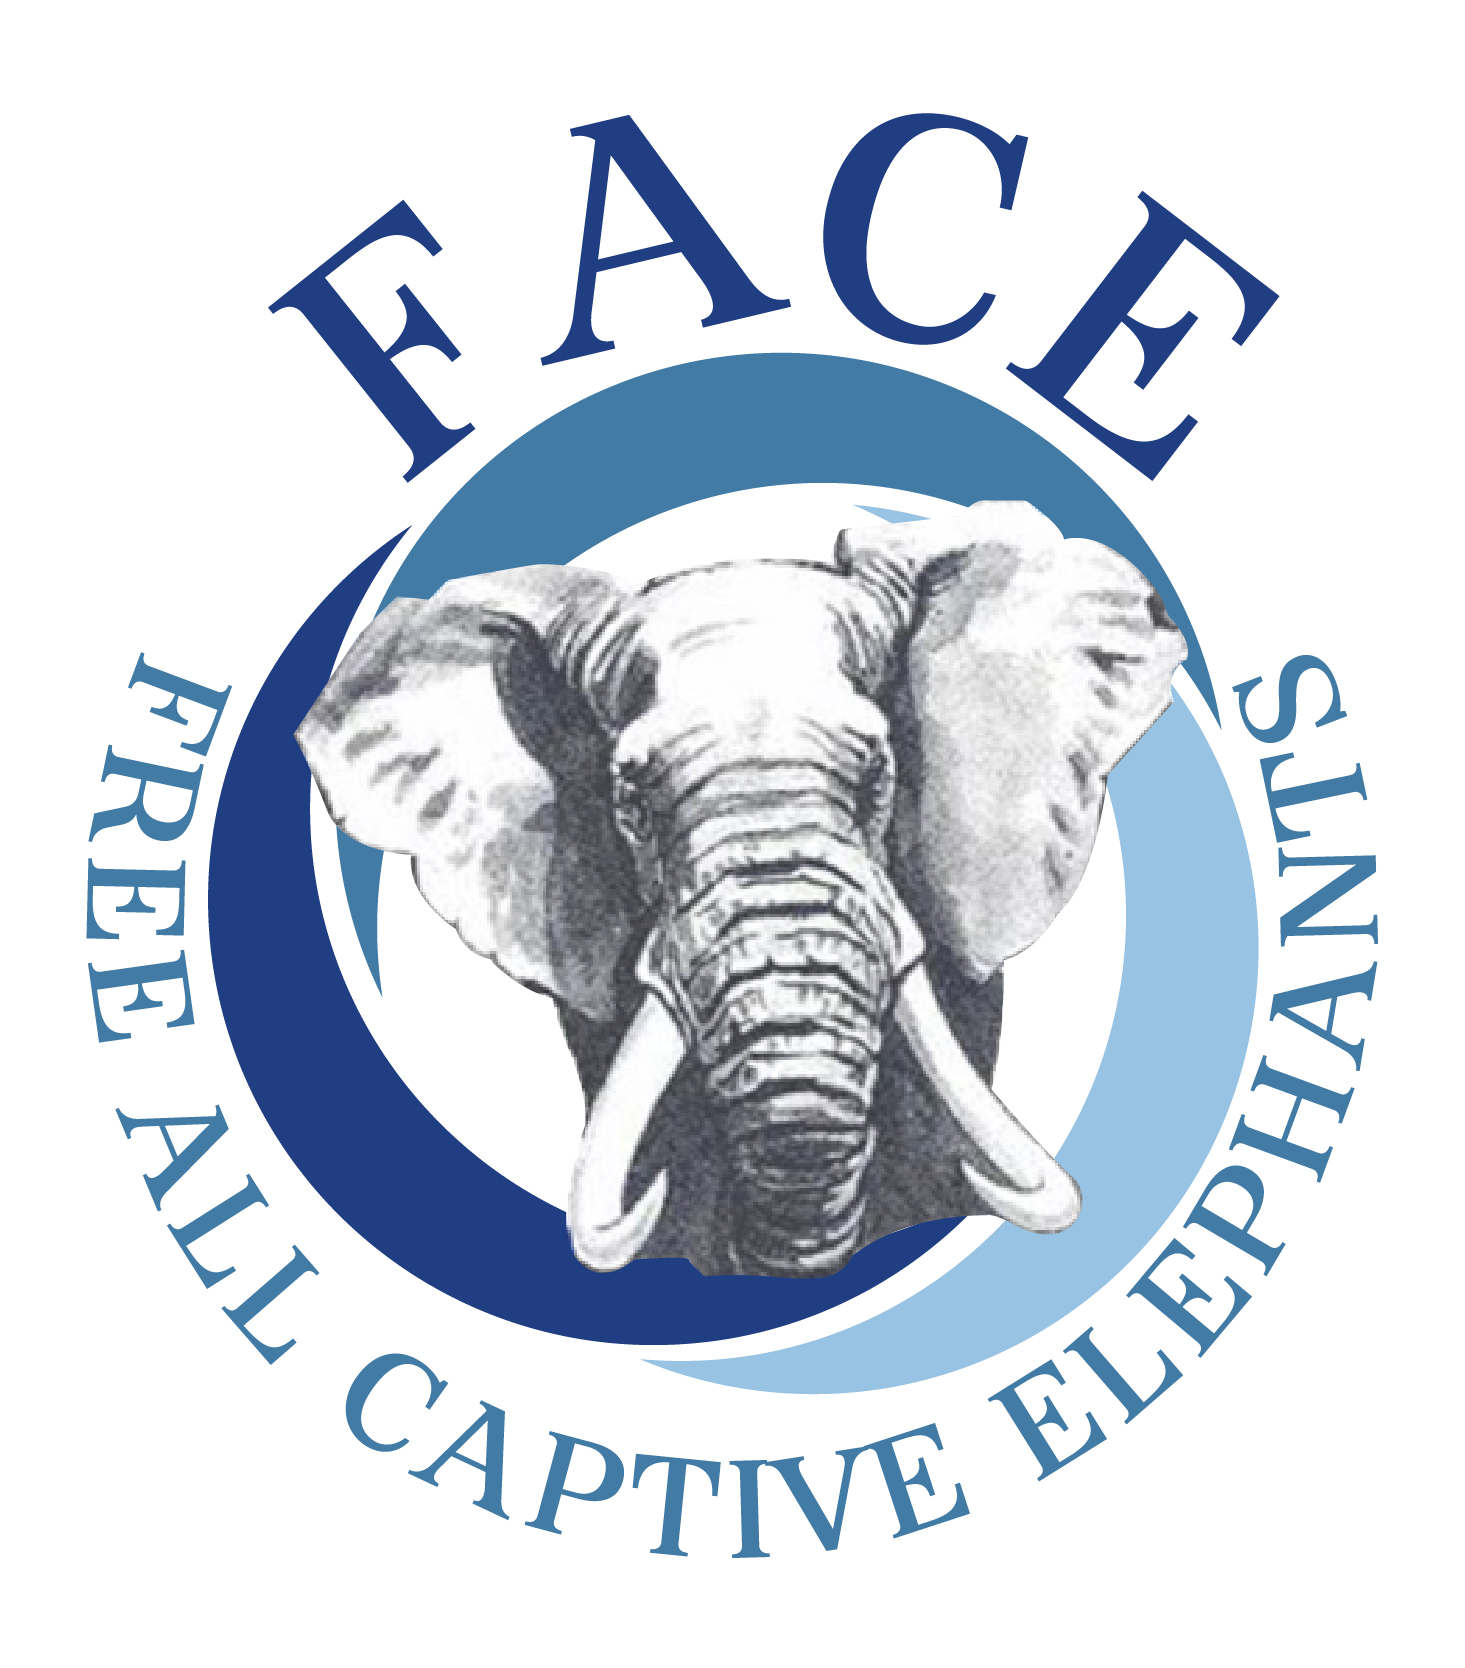 Free All Captive Elephants